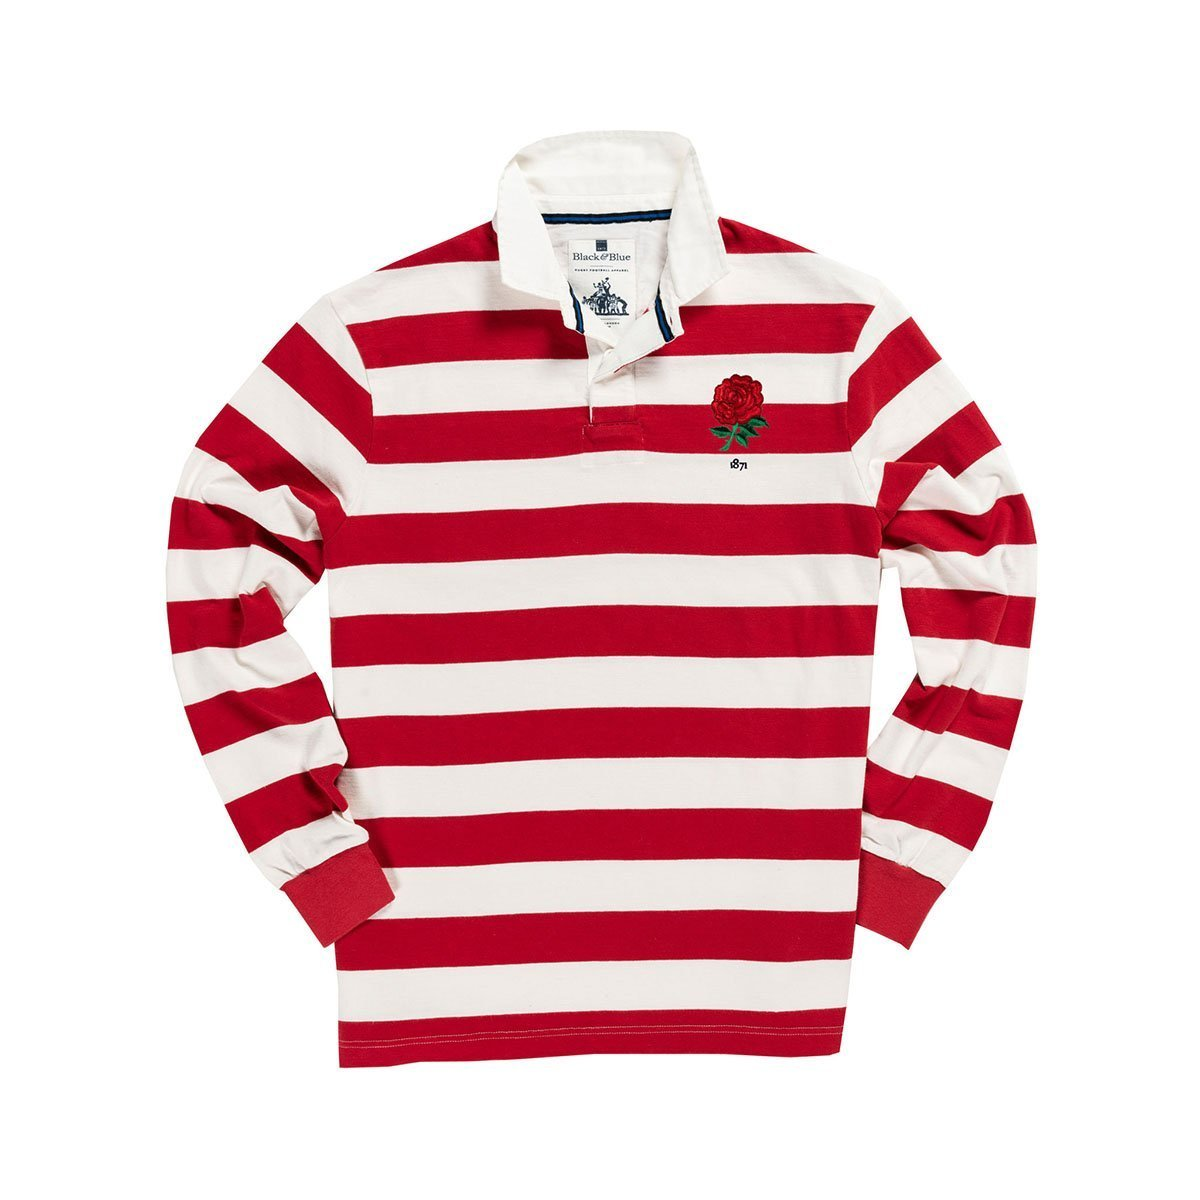 1IN/ENRWXS, Black & Blue 1871, England 1871 Special Edition Rugby Shirt, Red/White, Vintage, Classic Rugby Shirt